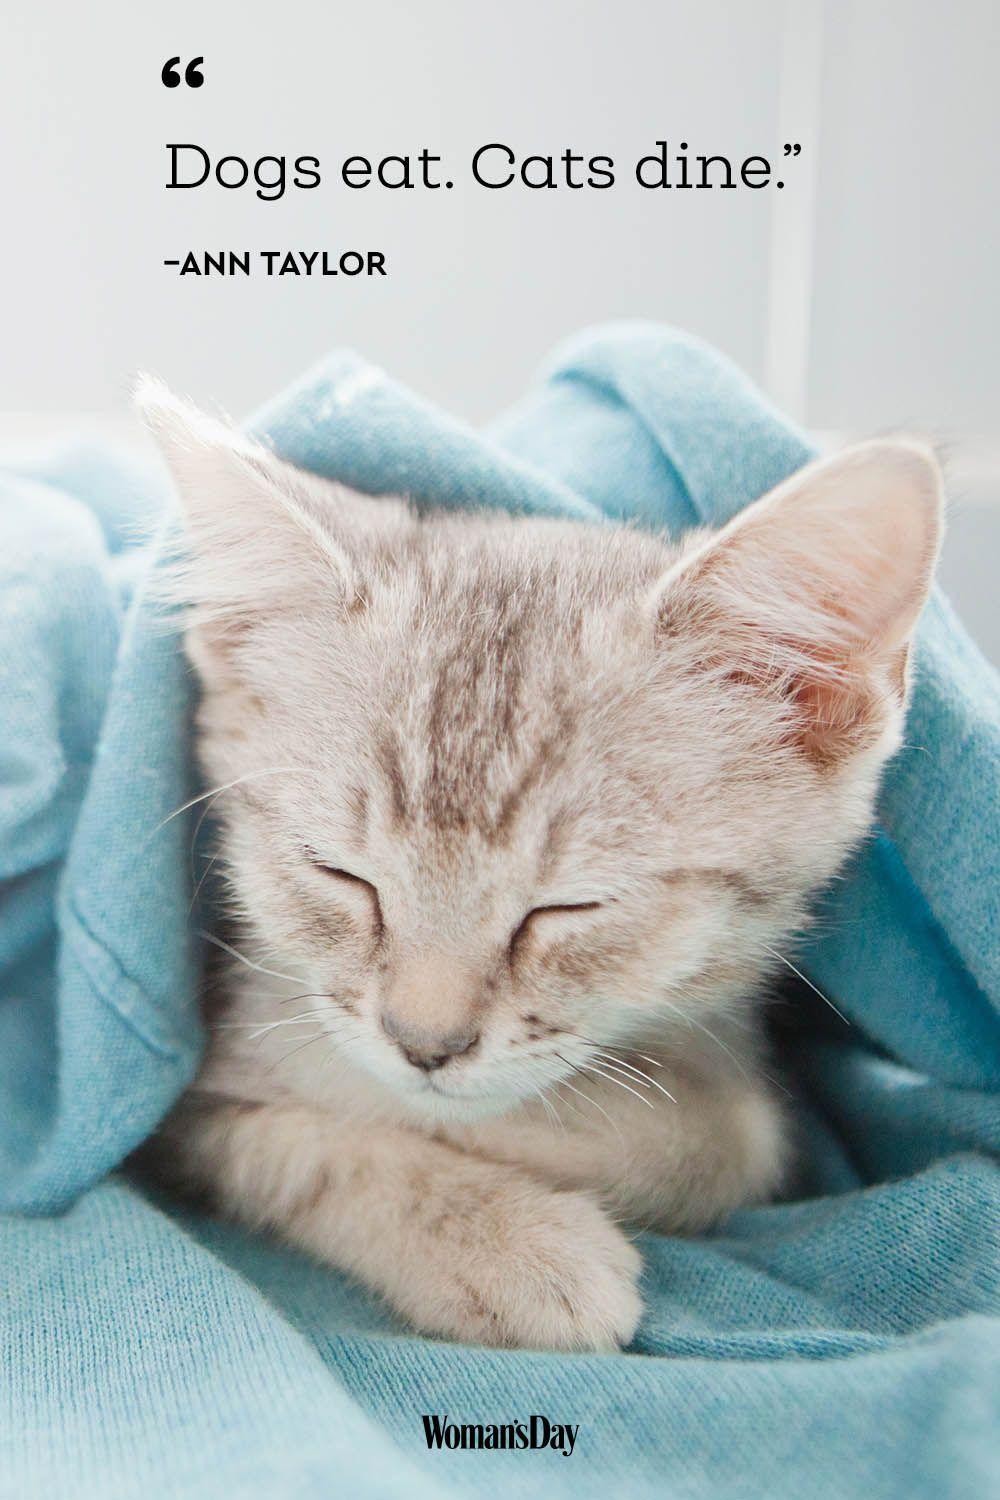 cat quotes - Ann Taylor